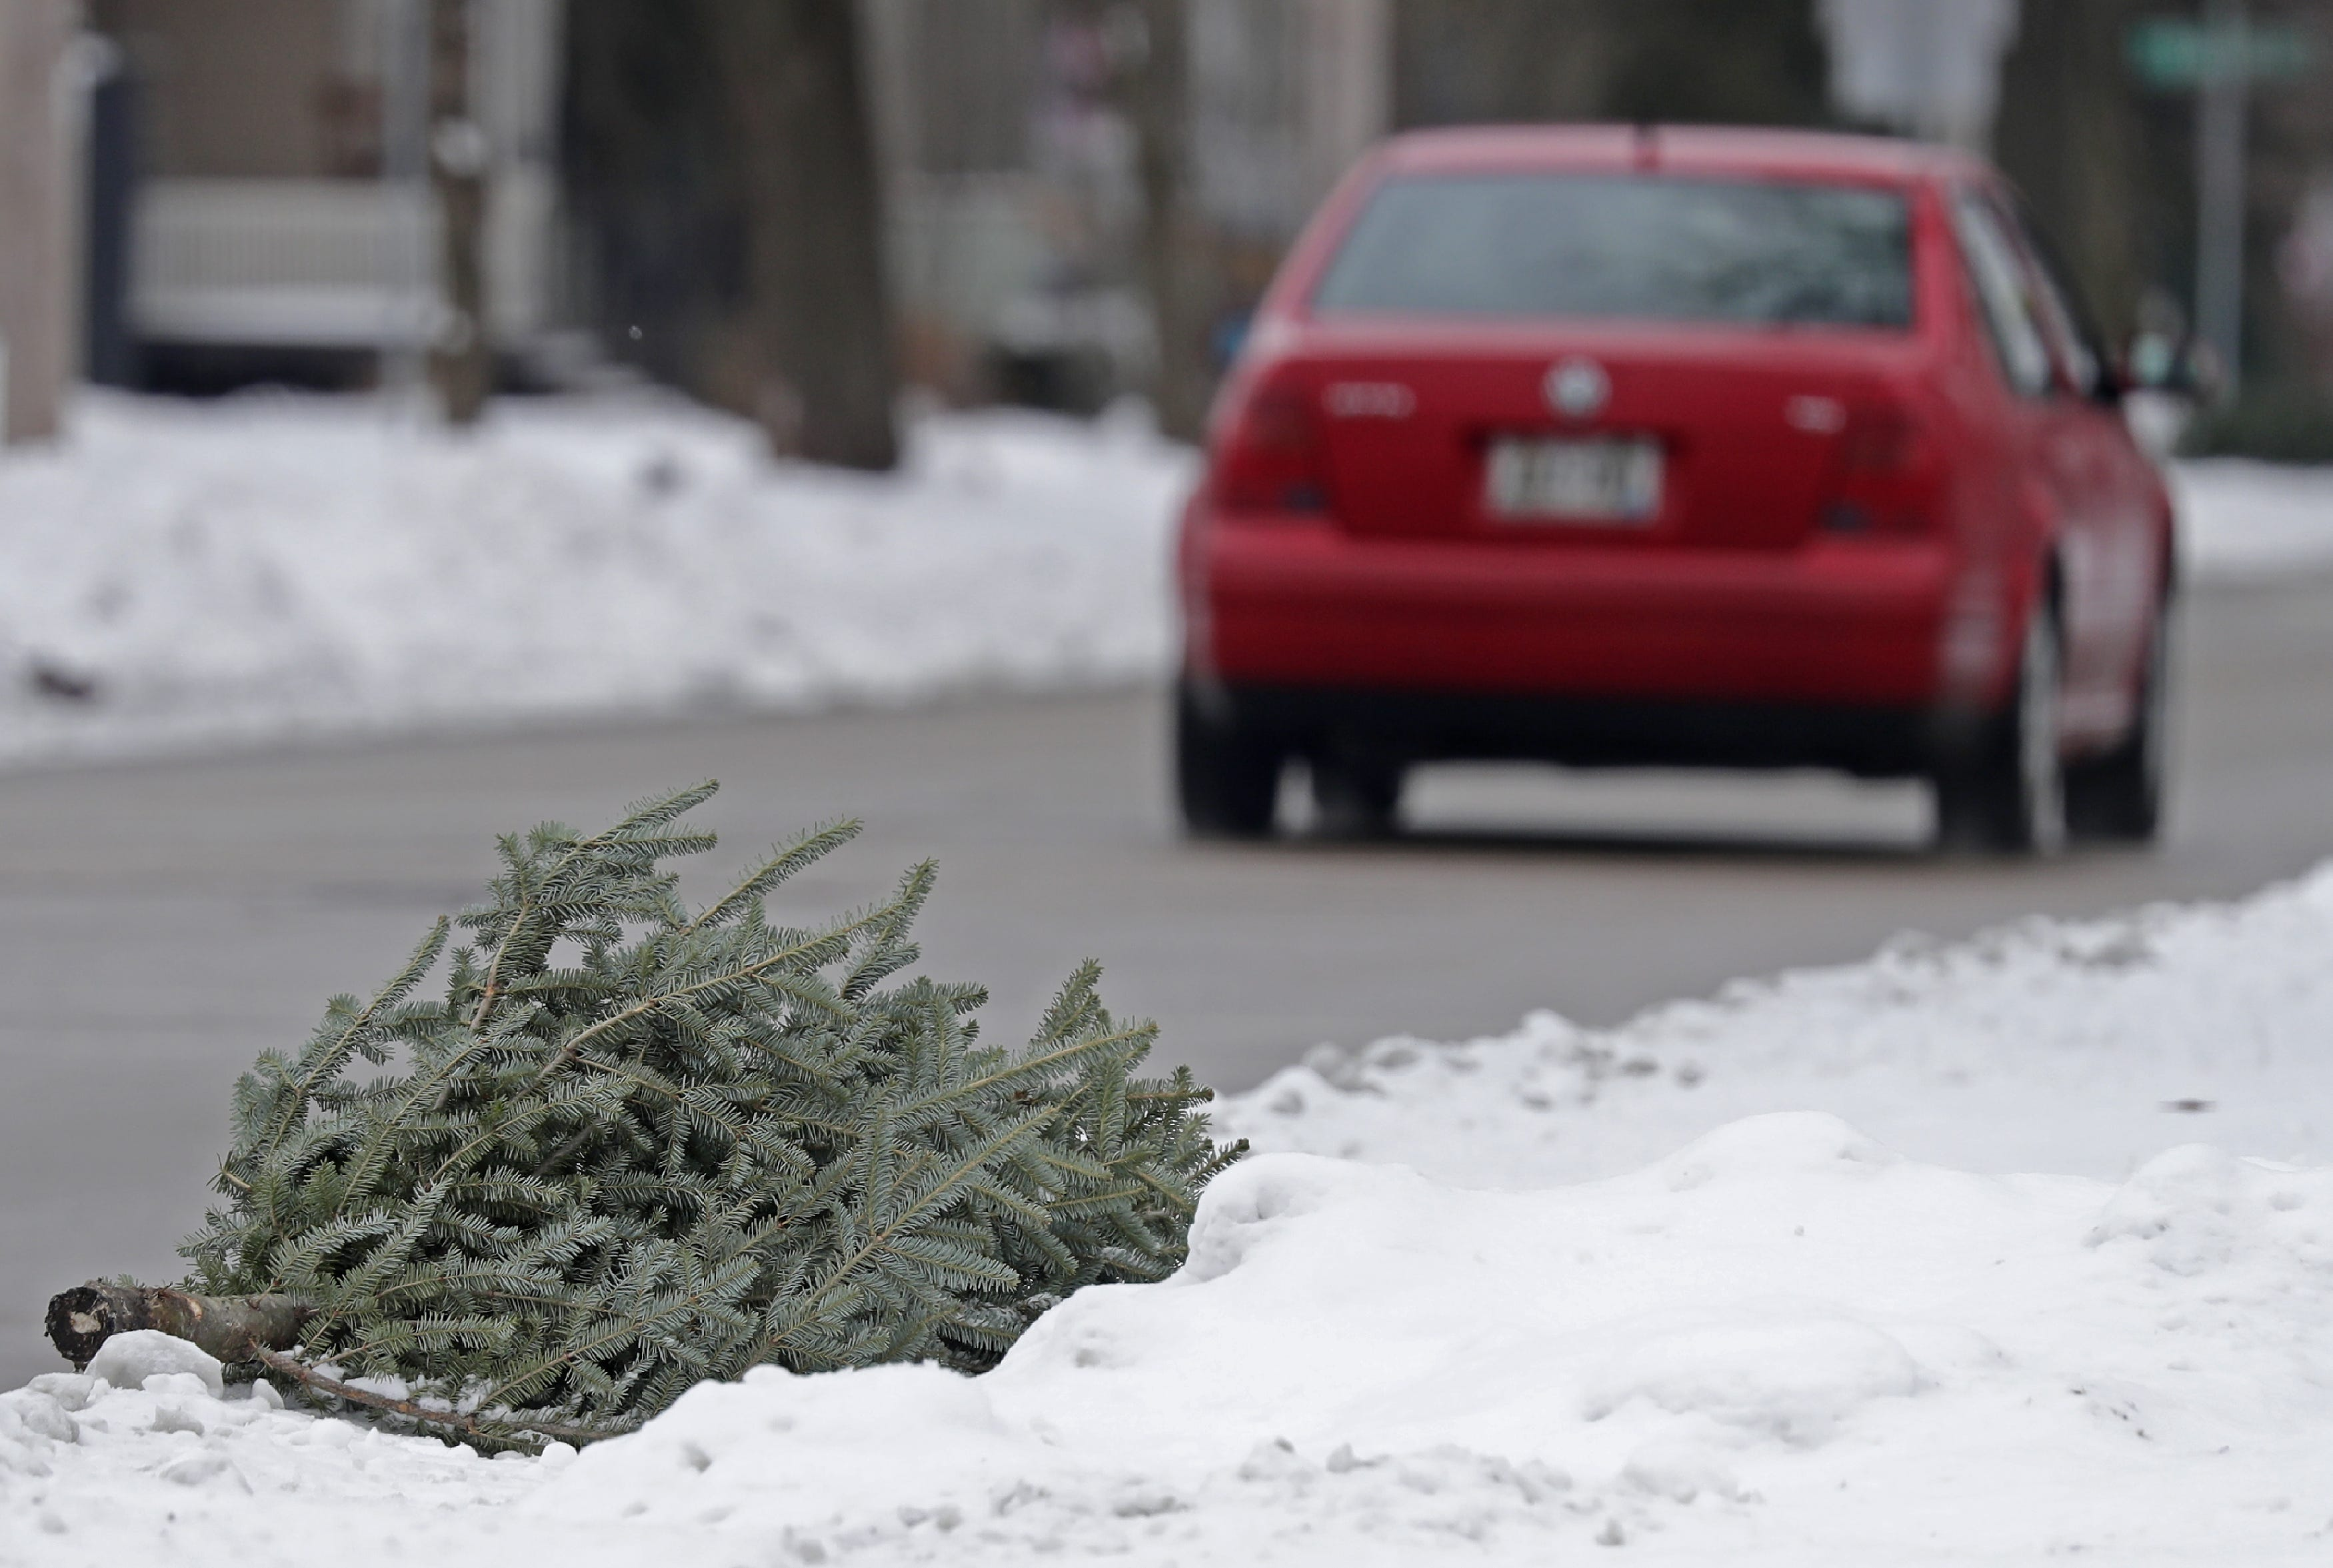 Kaukauna Garbage Pickup Christmas 2021 Christmas Trees Curbside Collection Of Discarded Trees Starts Monday